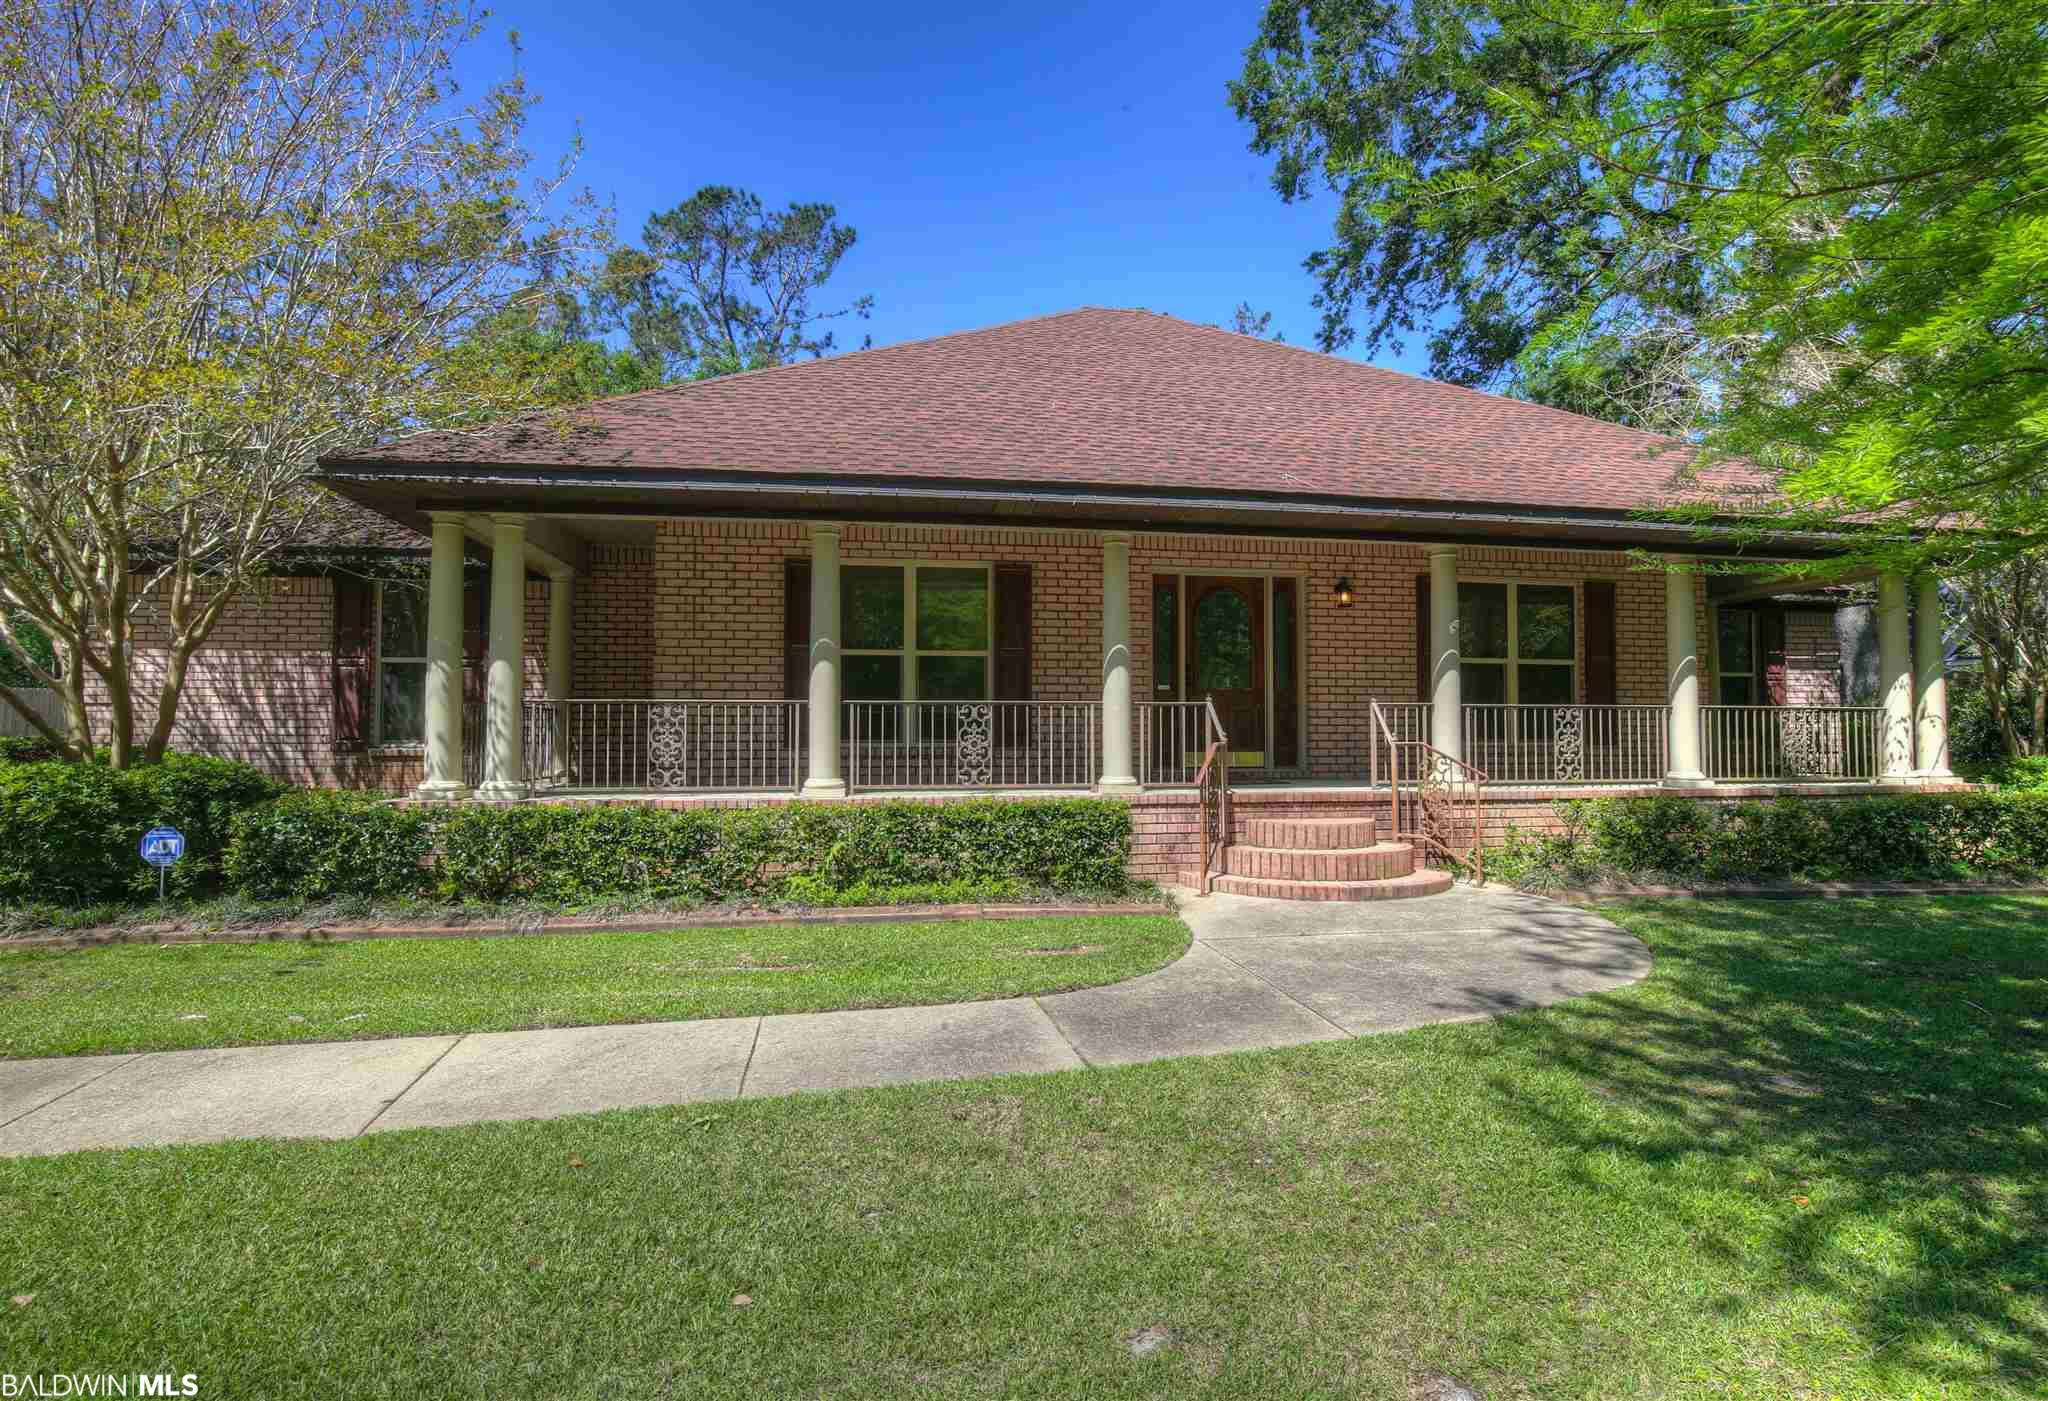 Wonderfully maintained home in the well established neighborhood of Country Woods! A lovely brick home with many extras including a tankless water heating system, 4-zoned A/C system, in-house generator, and storage galore! The home features  a large great room with fireplace and a huge Florida sun room which opens to the wooded back yard! A must see!!!